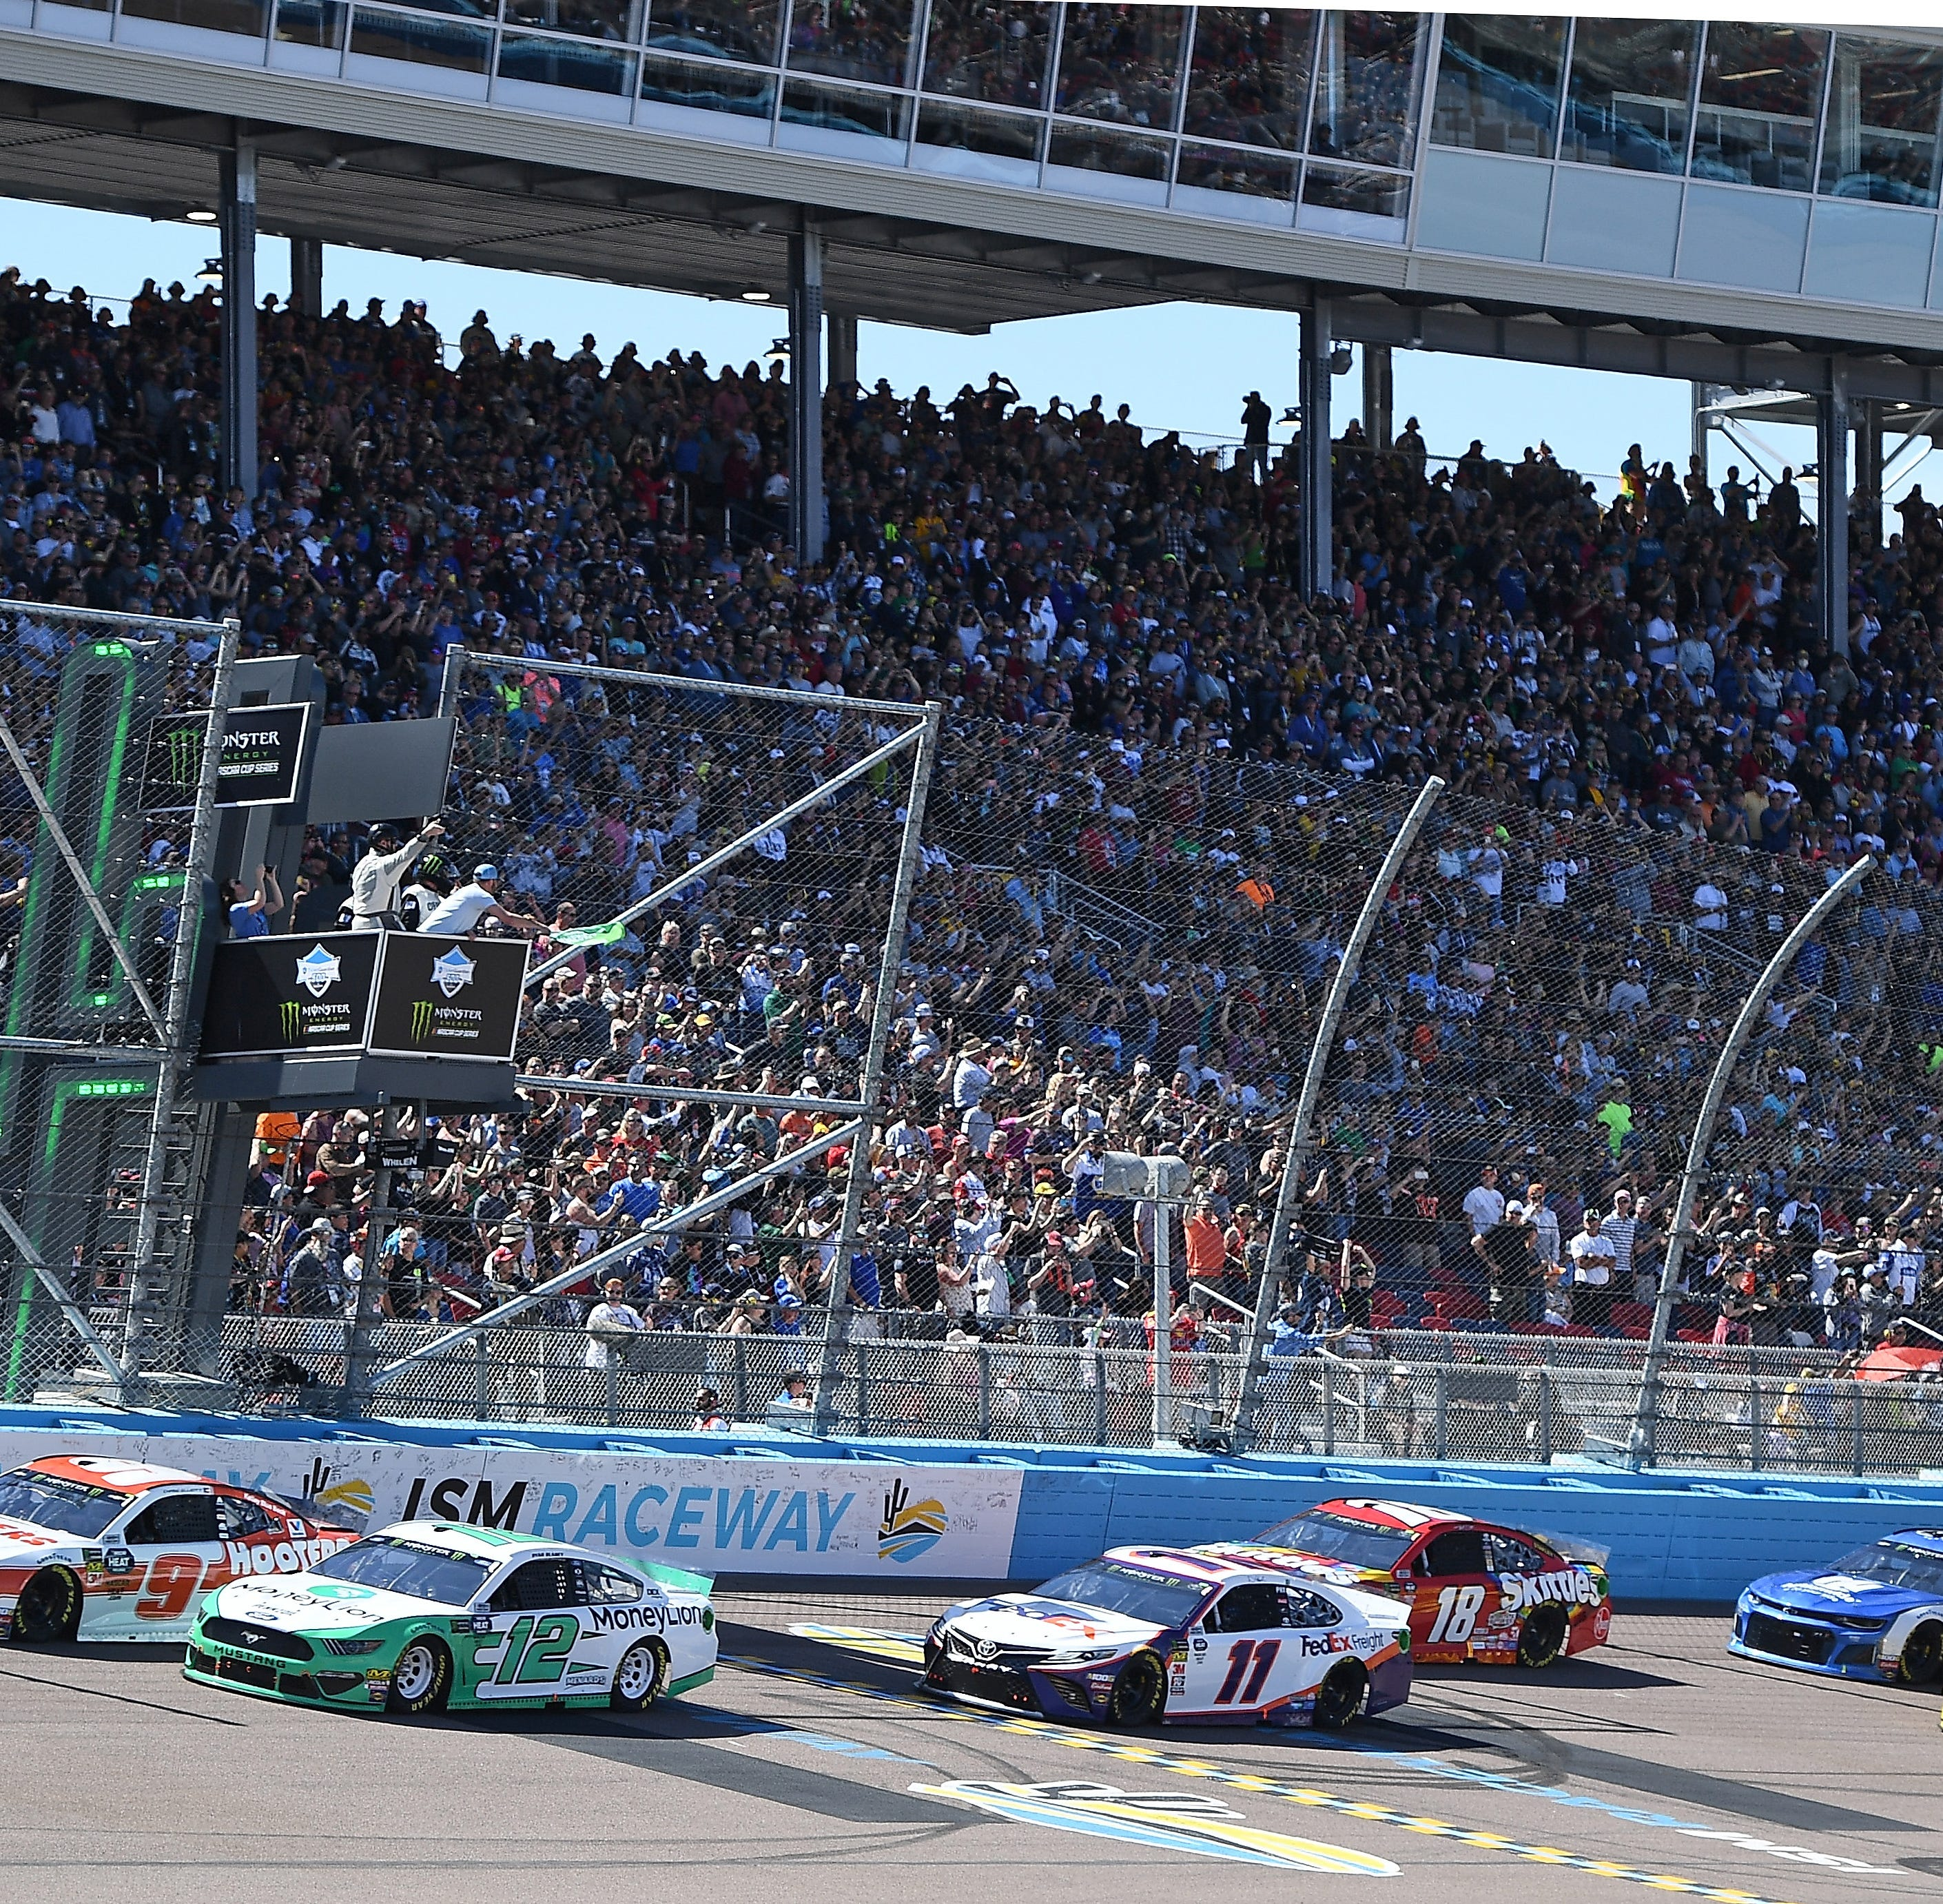 Could NASCAR race in Phoenix move ahead of the Daytona 500 on the schedule?